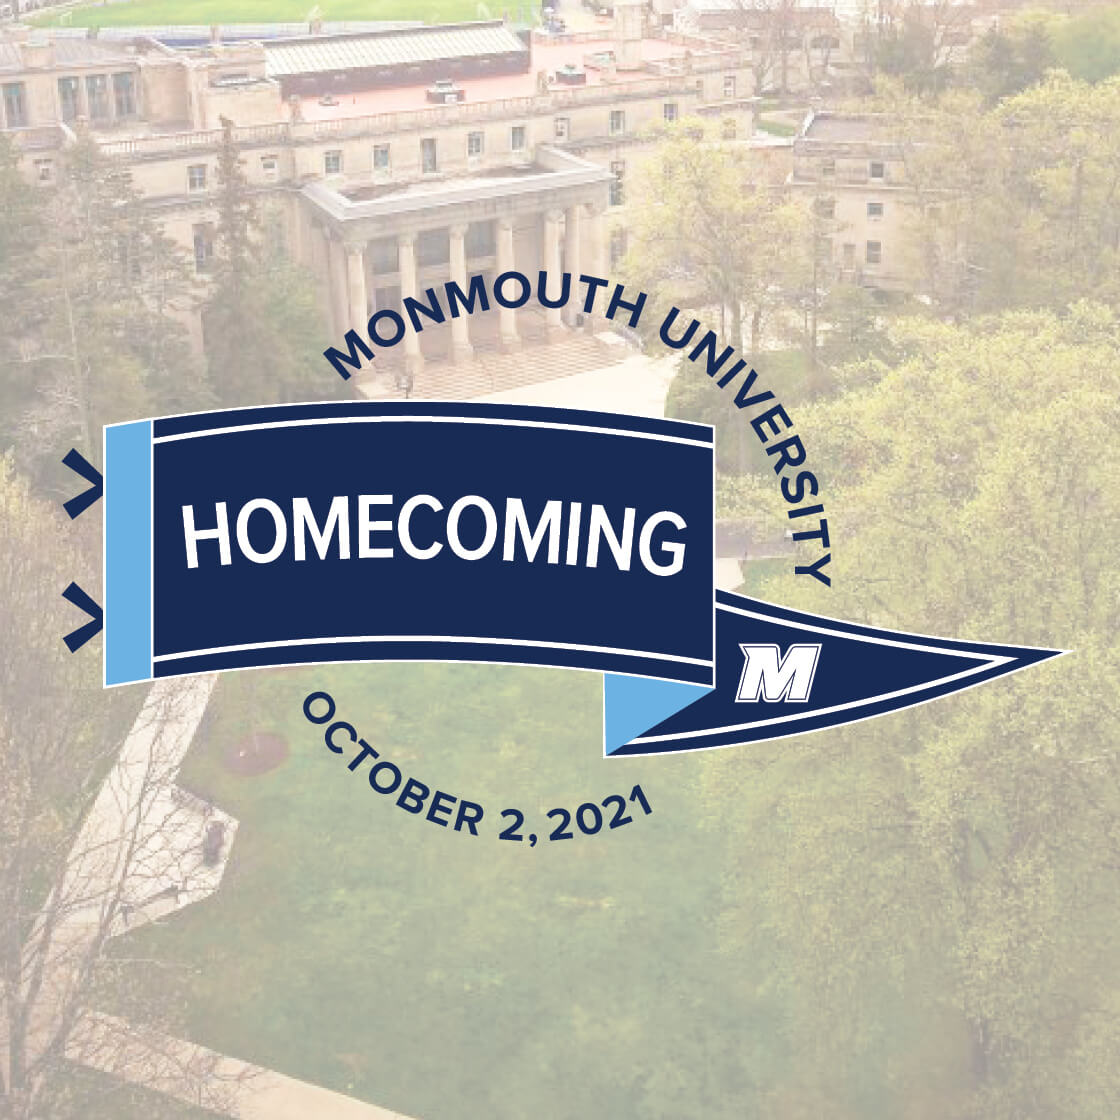 Monmouth University Homecoming, October 2, 2021